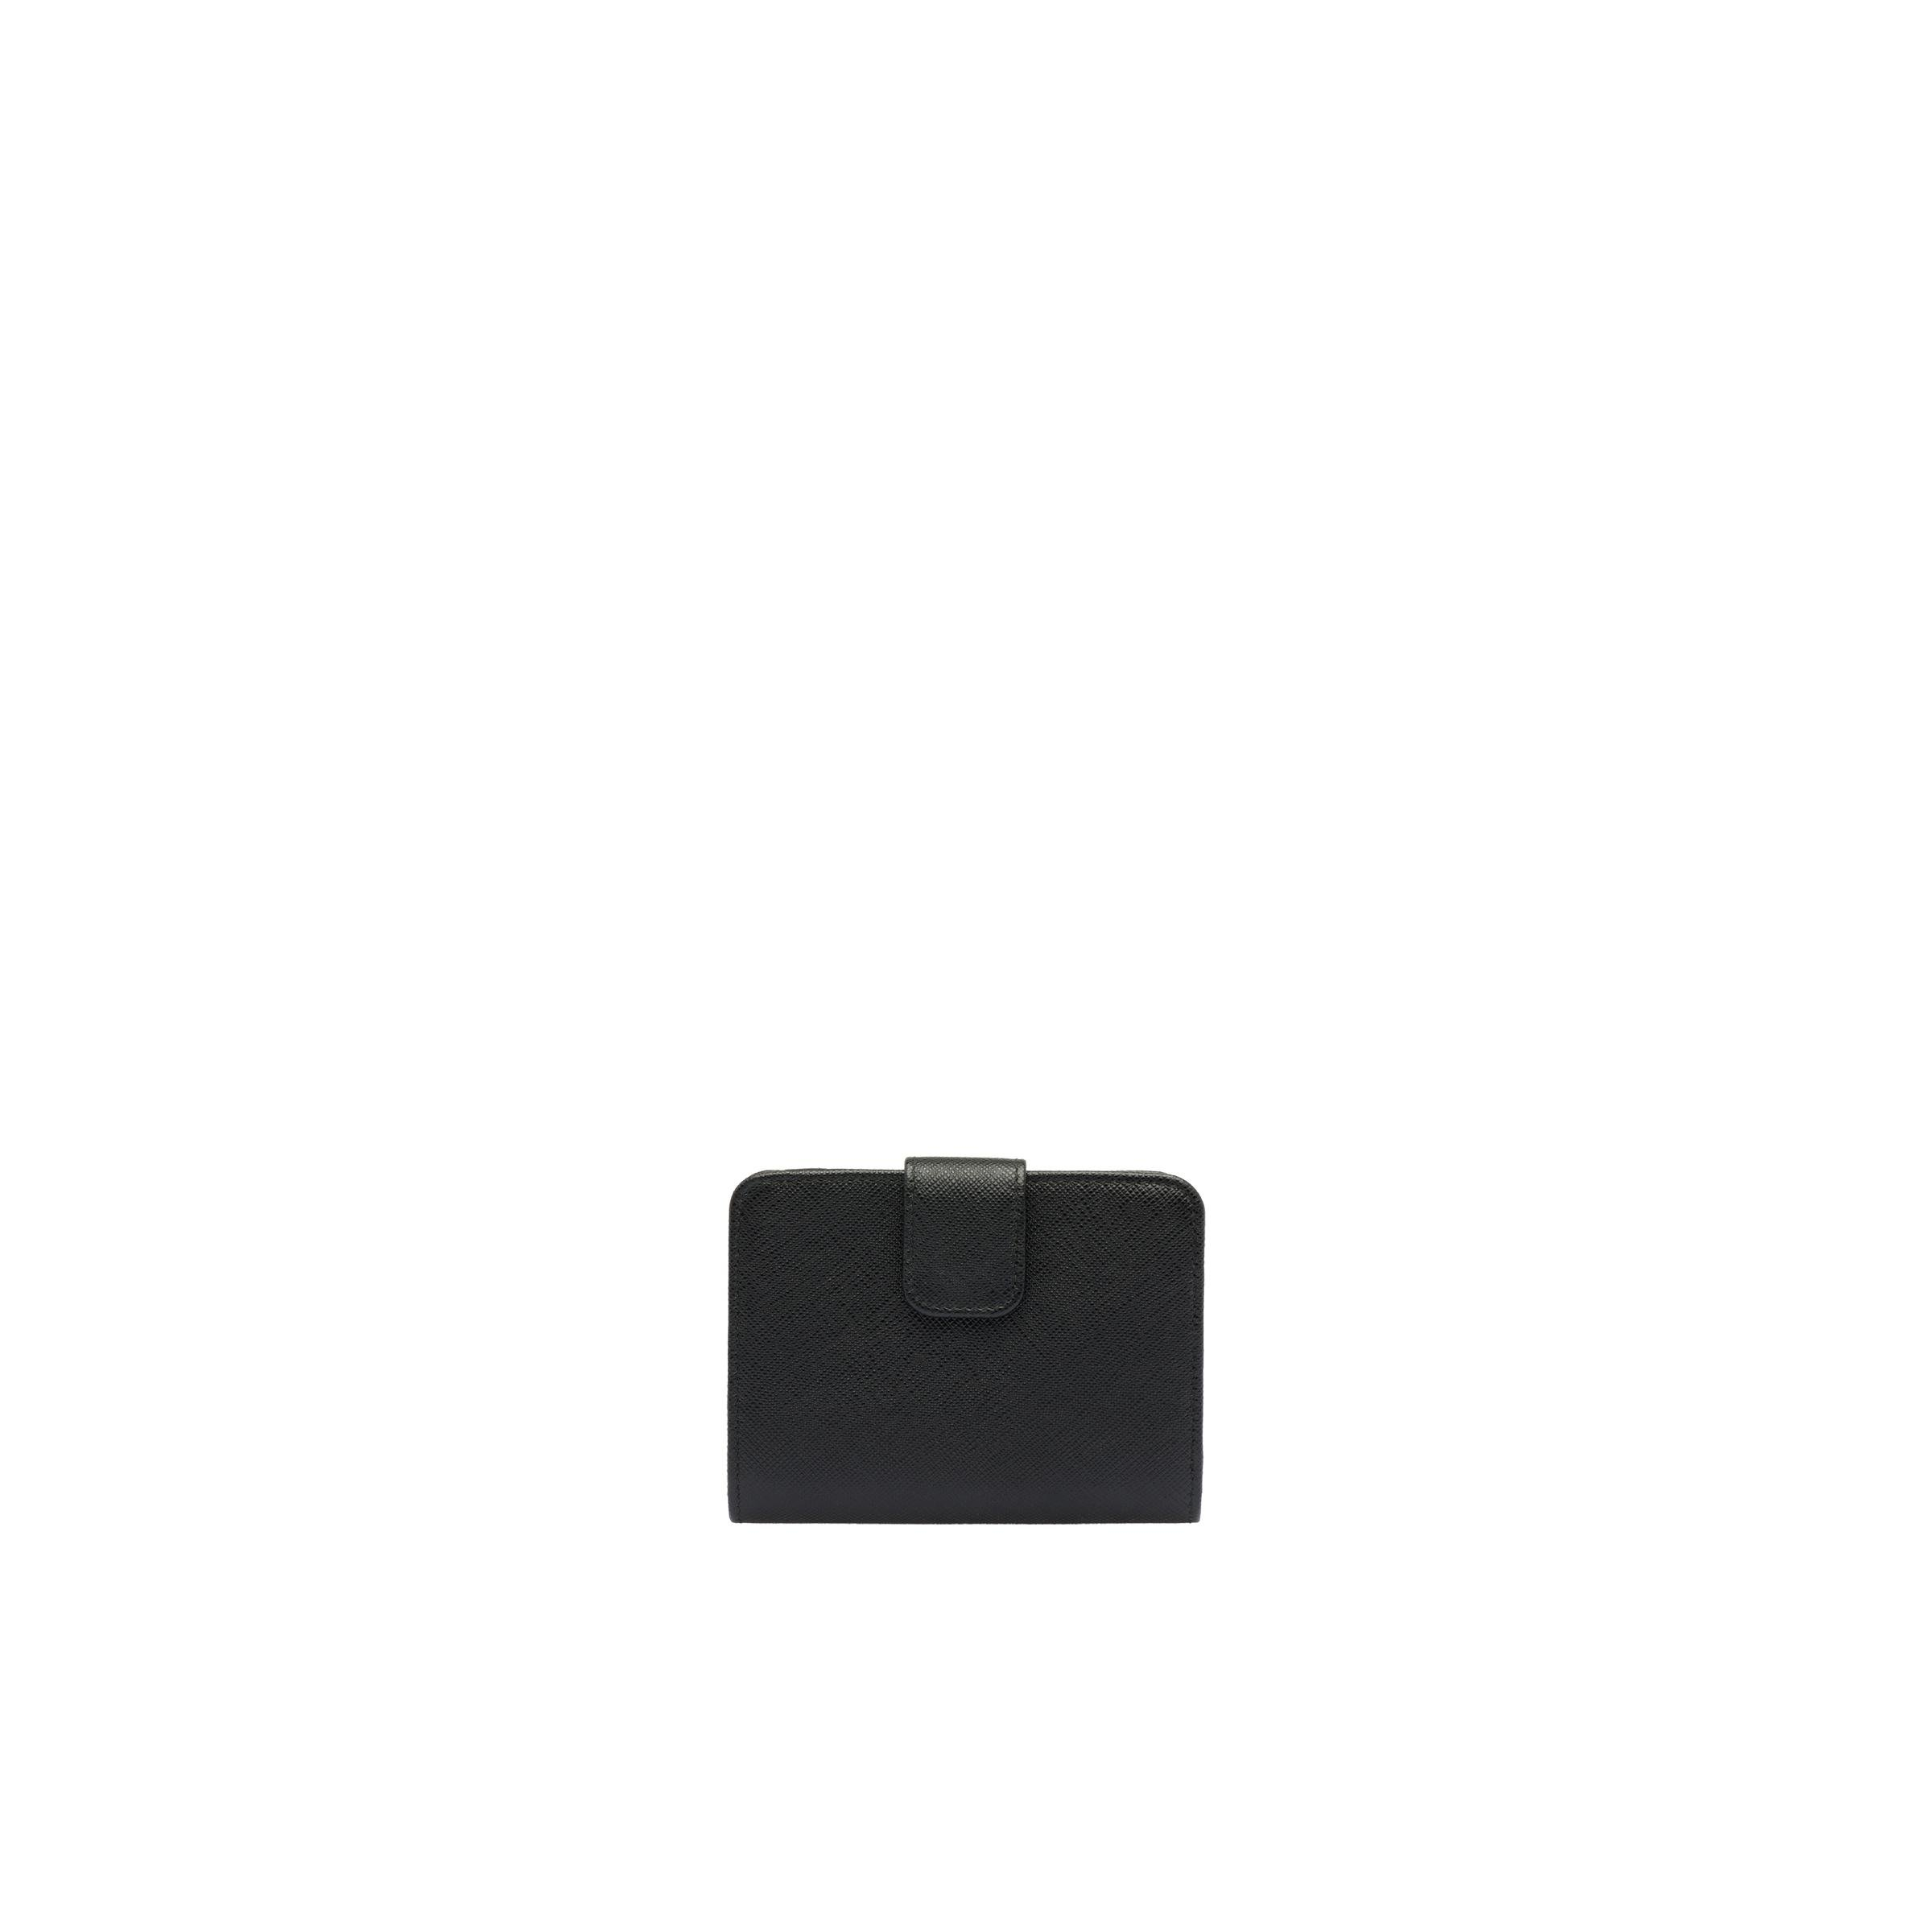 Small Saffiano Leather Wallet Women Black/hibiscus 4